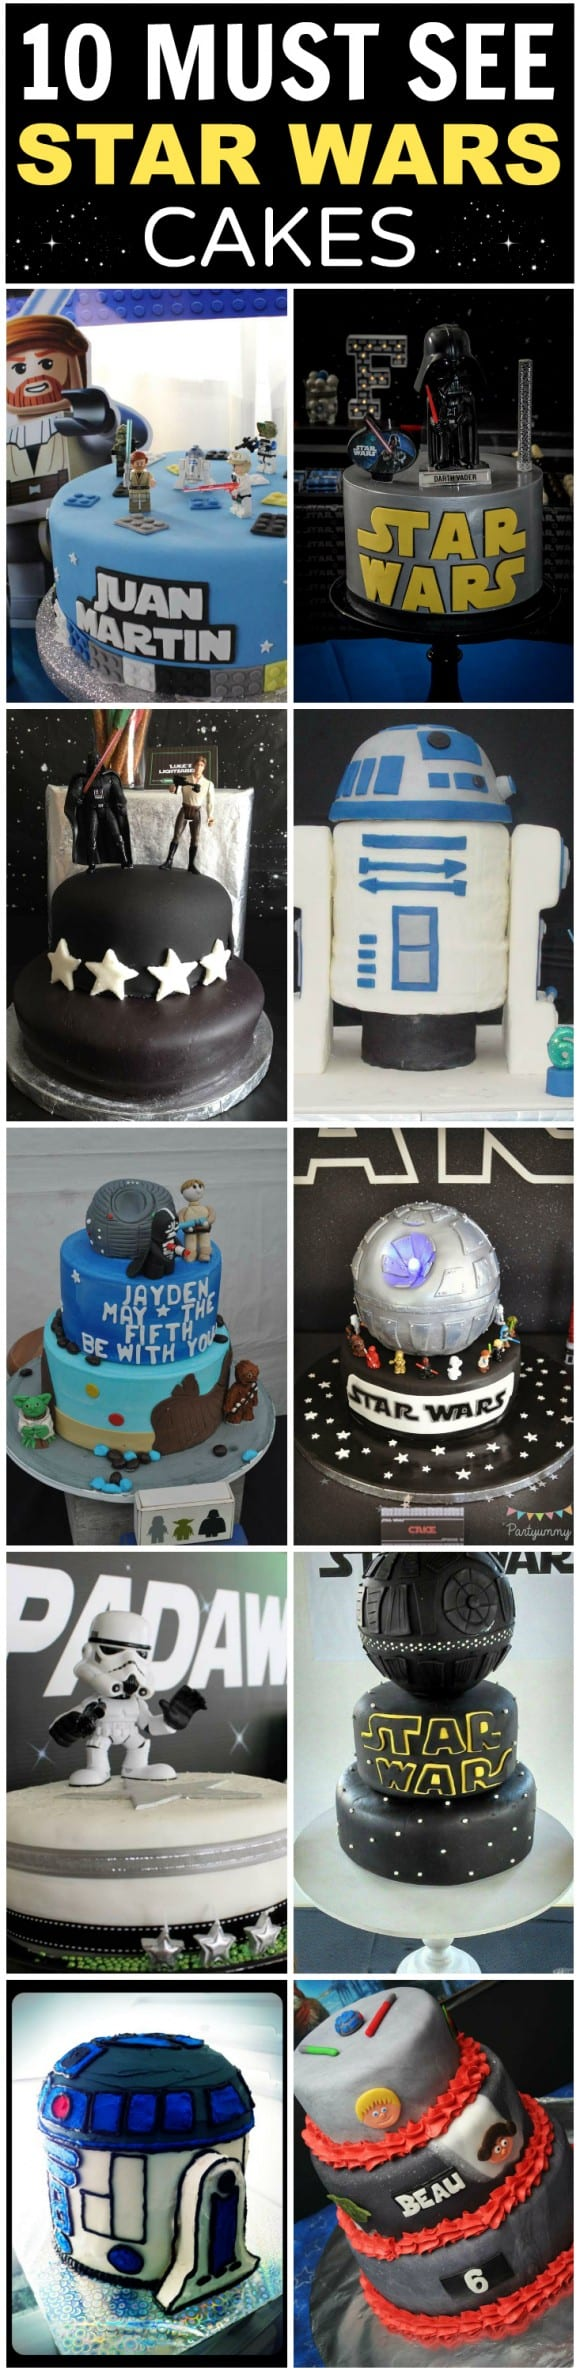 10 Must-See Star Wars Birthday Cakes -- Great inspiration for your Star Wars party! | CatchMyParty.com